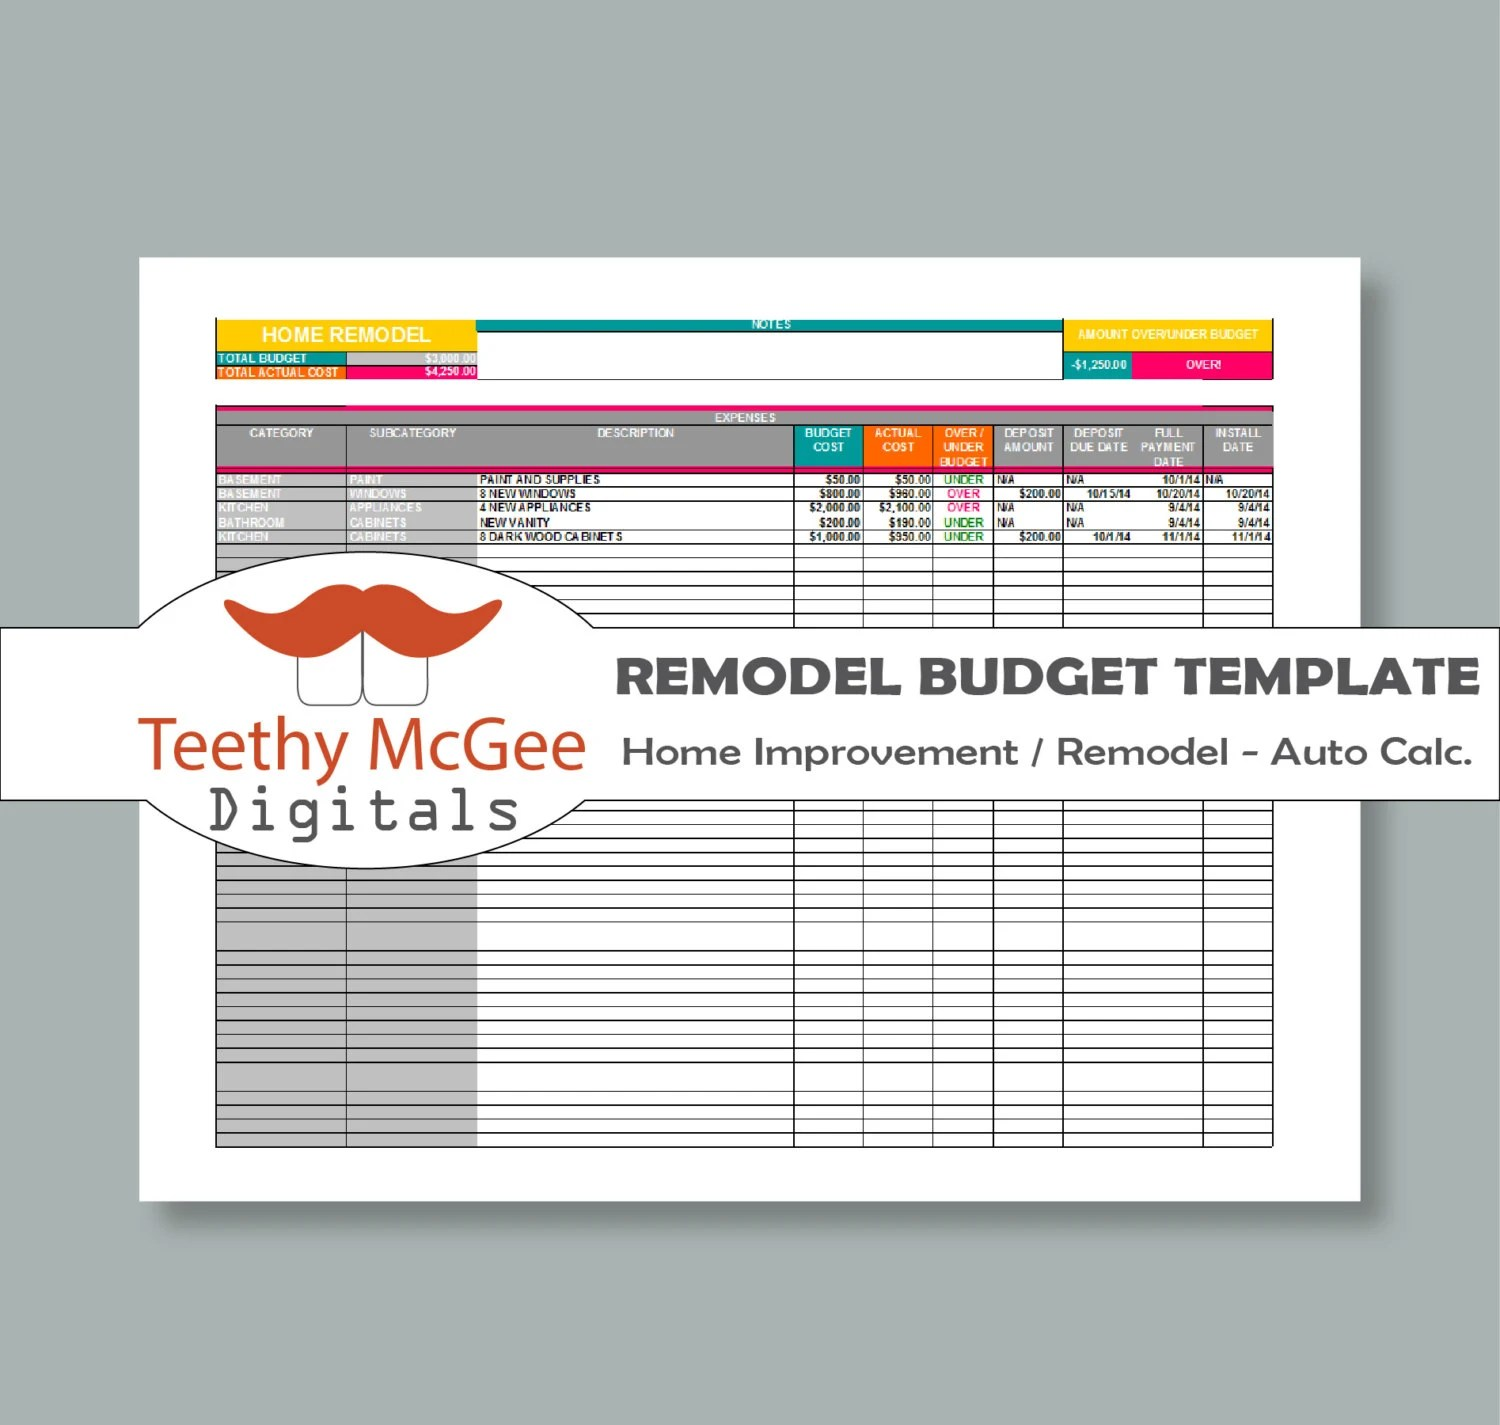 Home Improvement Remodel Budget Template